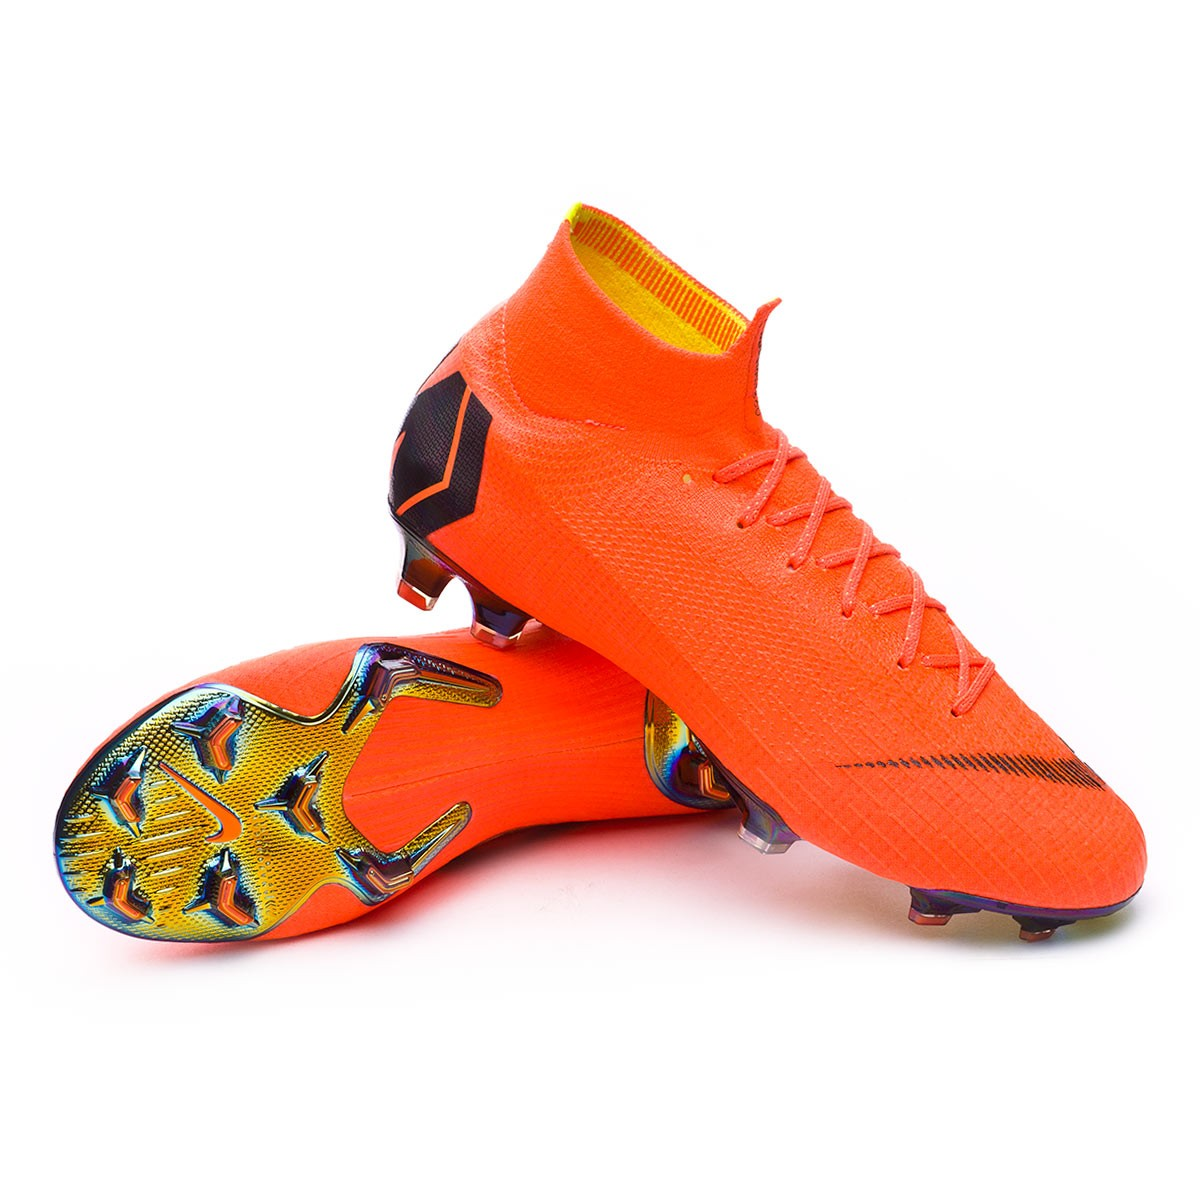 57697951a Football Boots Nike Mercurial Superfly VI Elite FG Total orange ...